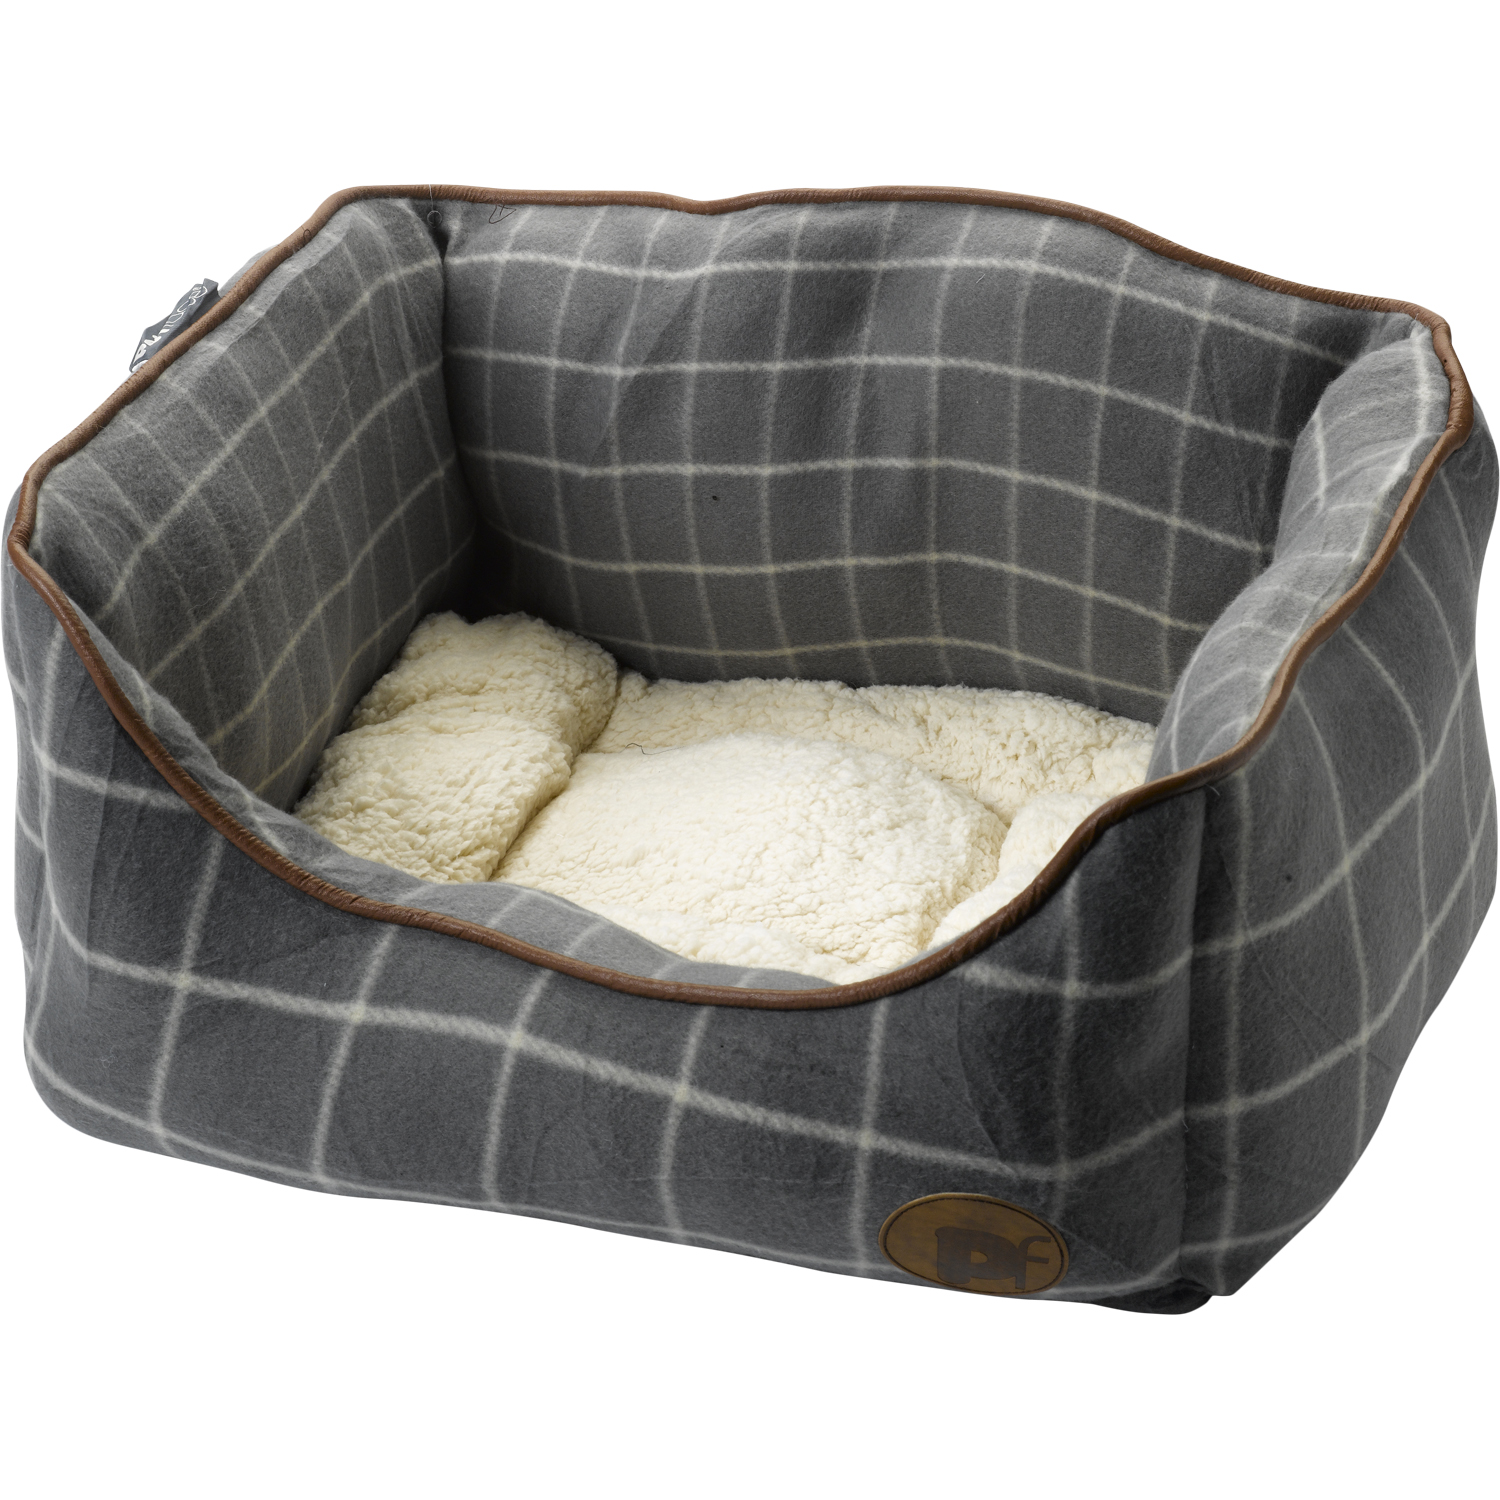 puppy for item kennels dog houses warm small kennel home comfortable pets keep dainchoul pet cat nest supplies bed soft beds cheap house pens in from